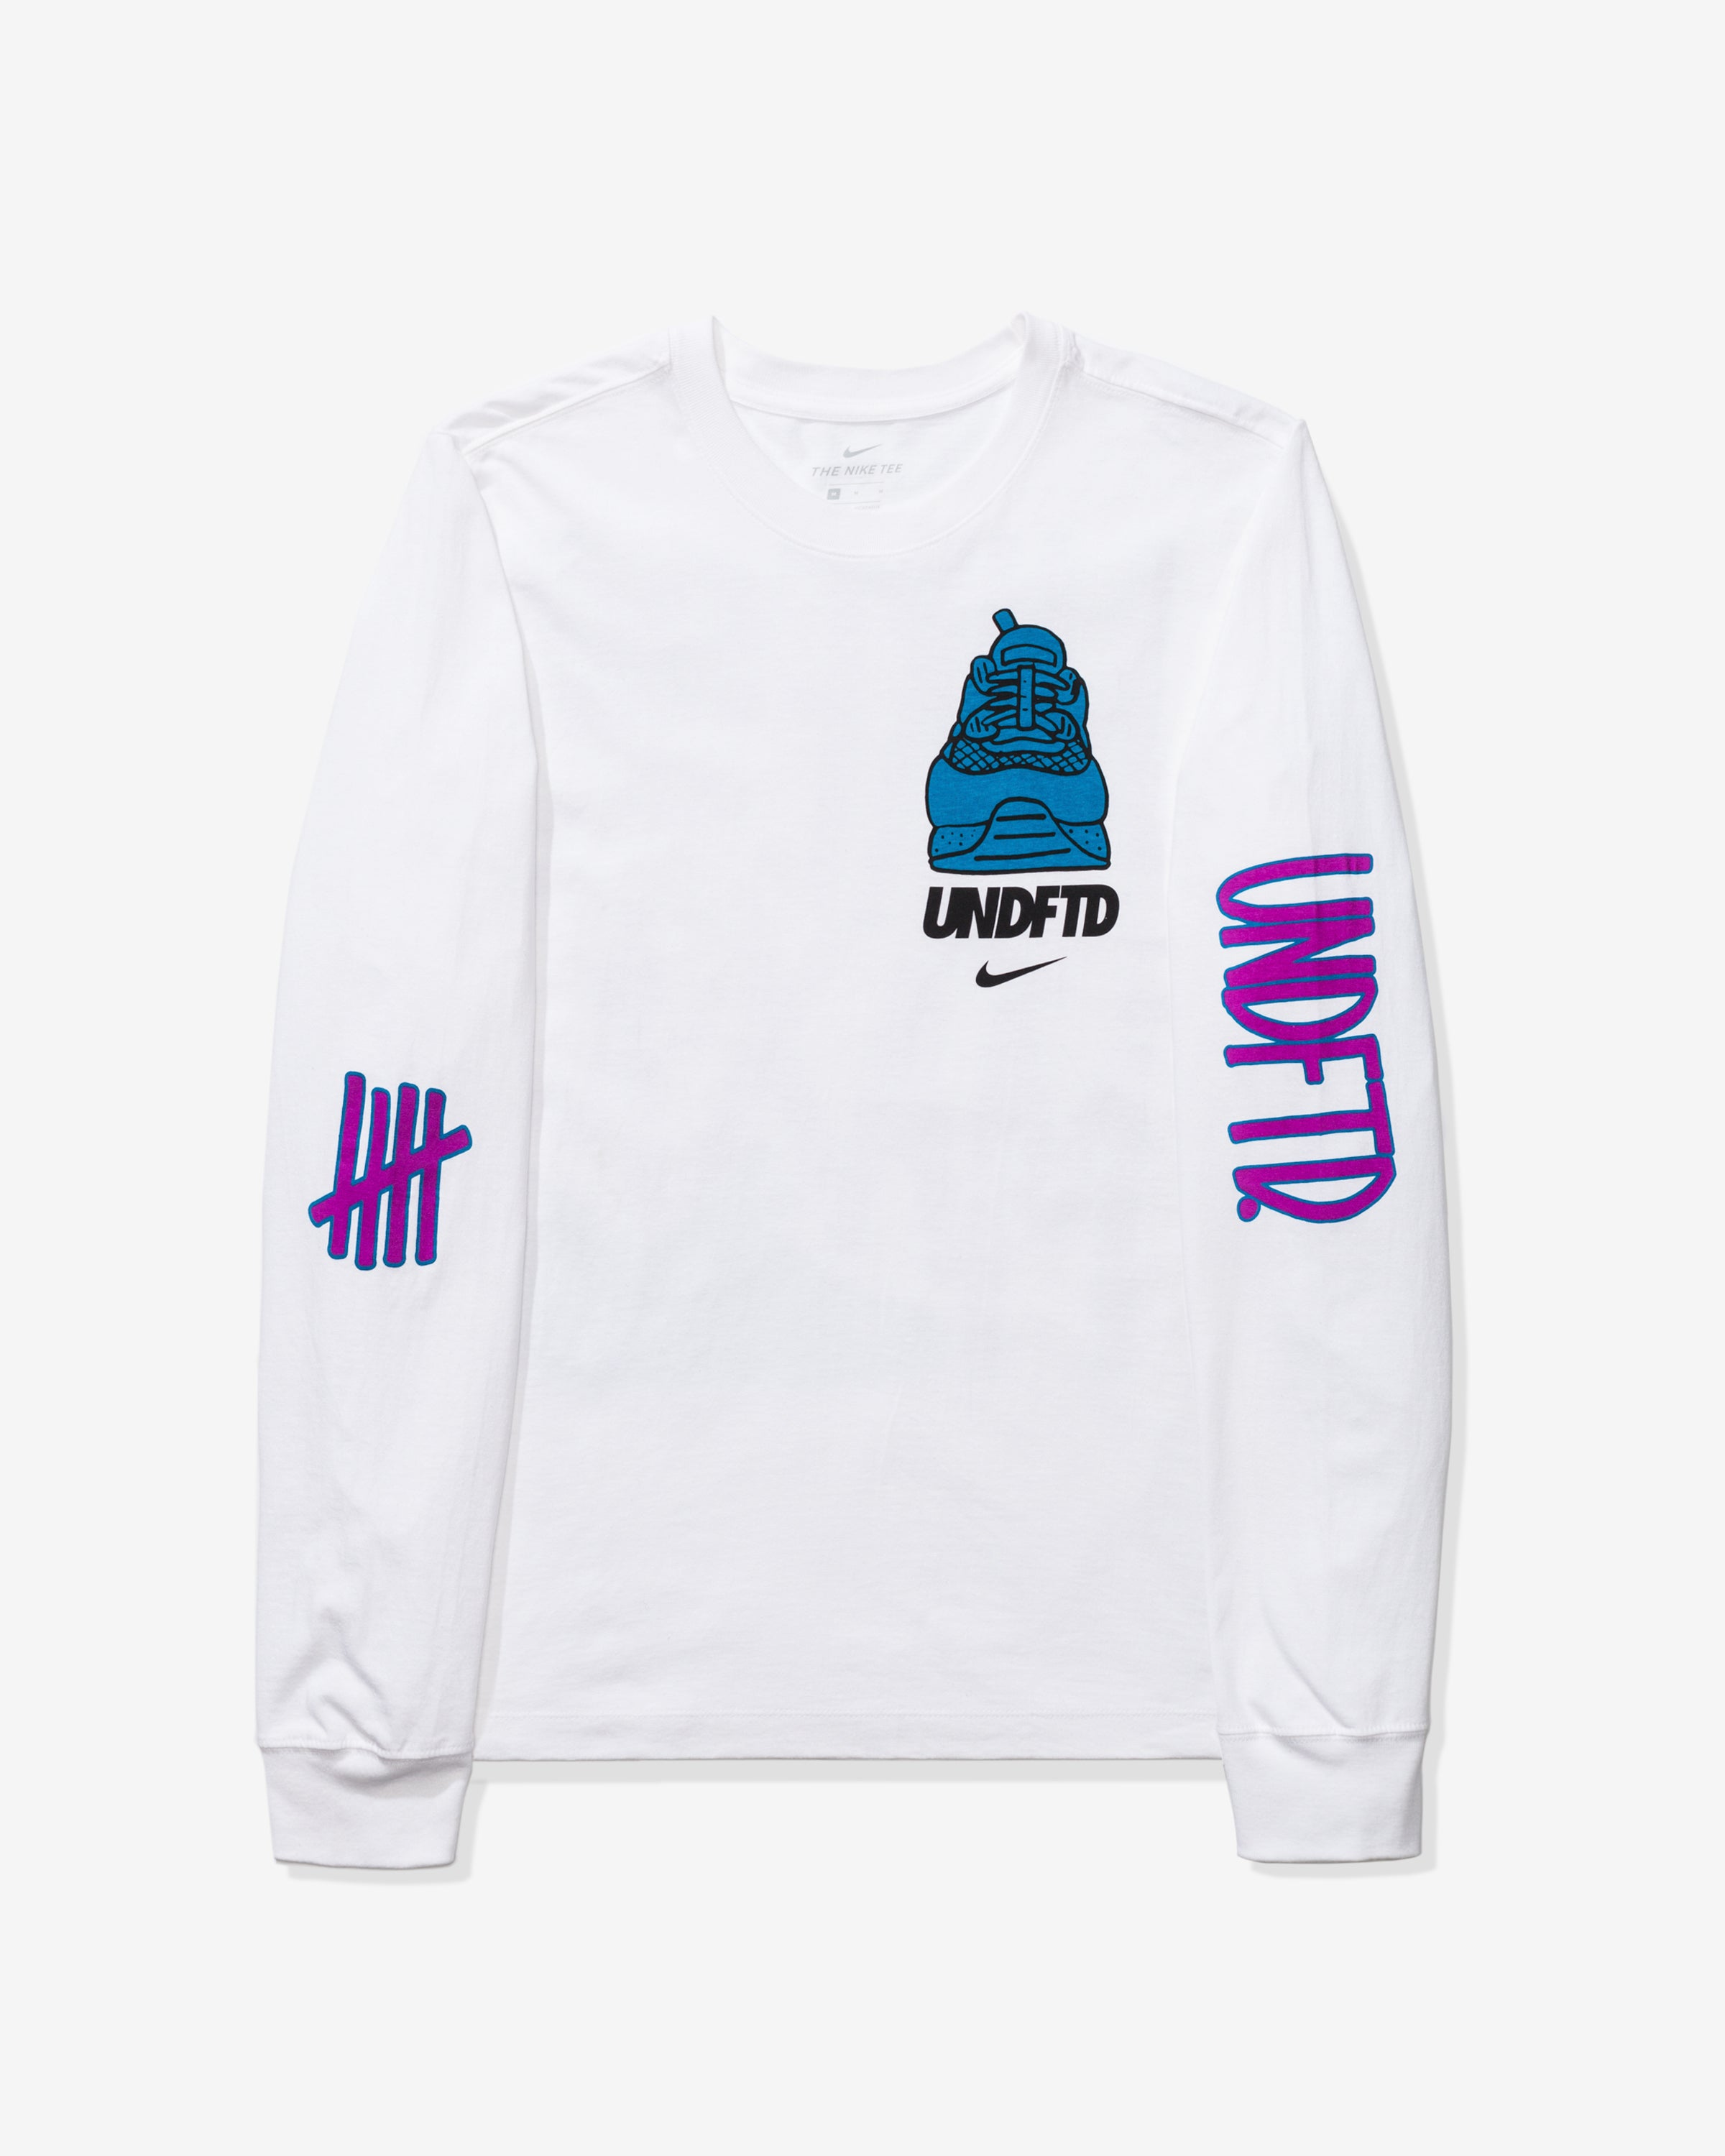 NIKE X UNDEFEATED AIR MAX 90 LS TEE - WHITE